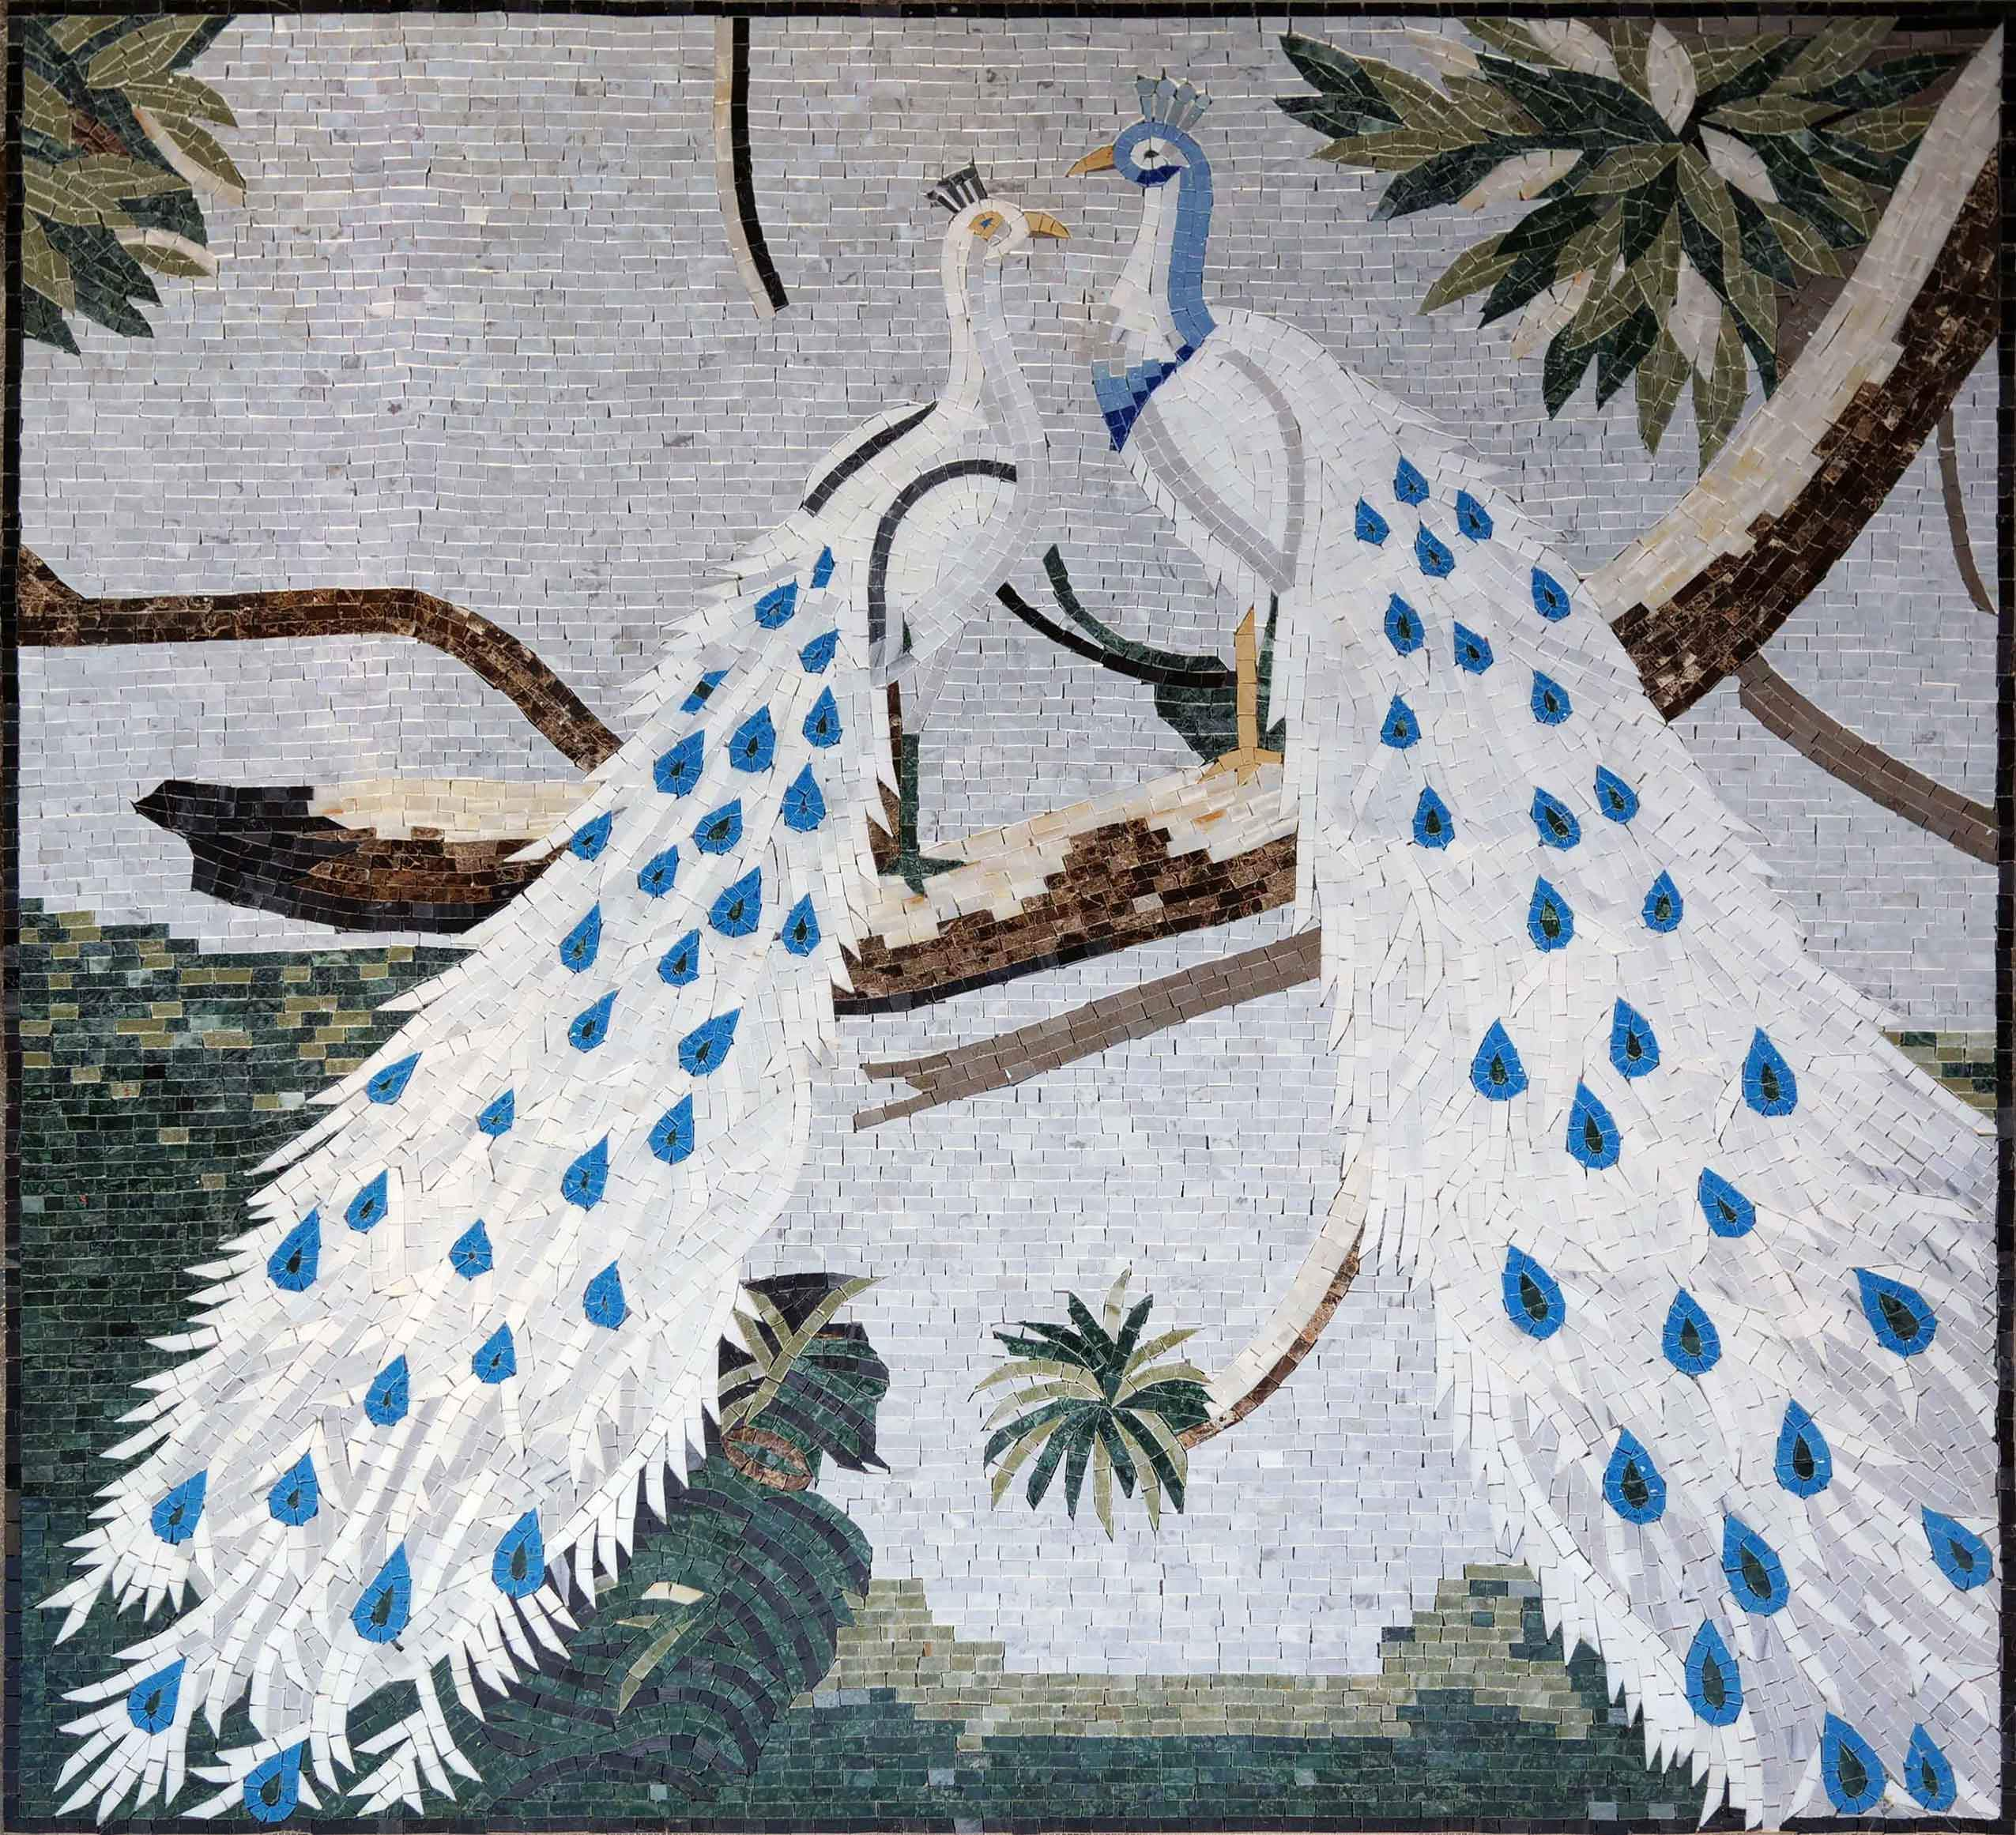 Animal Mosaic Designs - White Peacocks